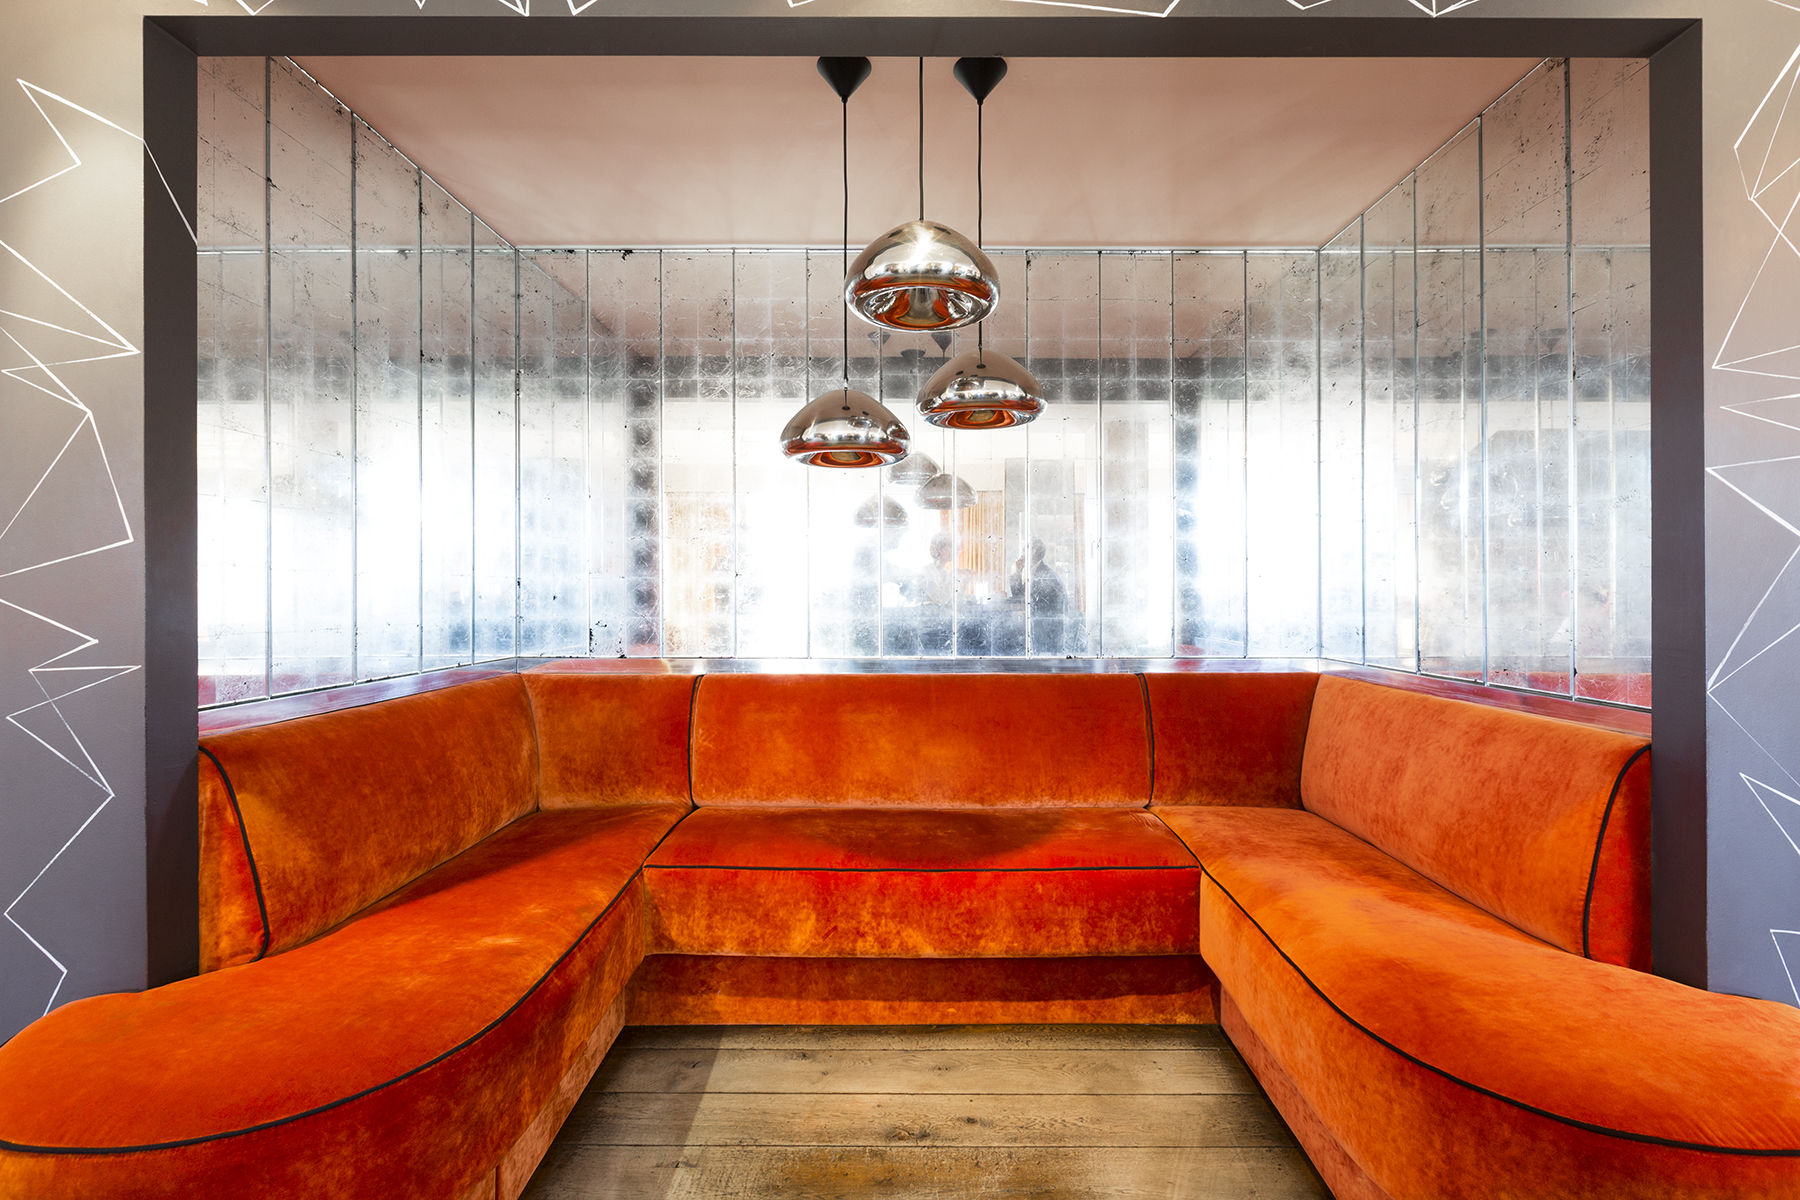 Banquette-seating-reupholstery-2